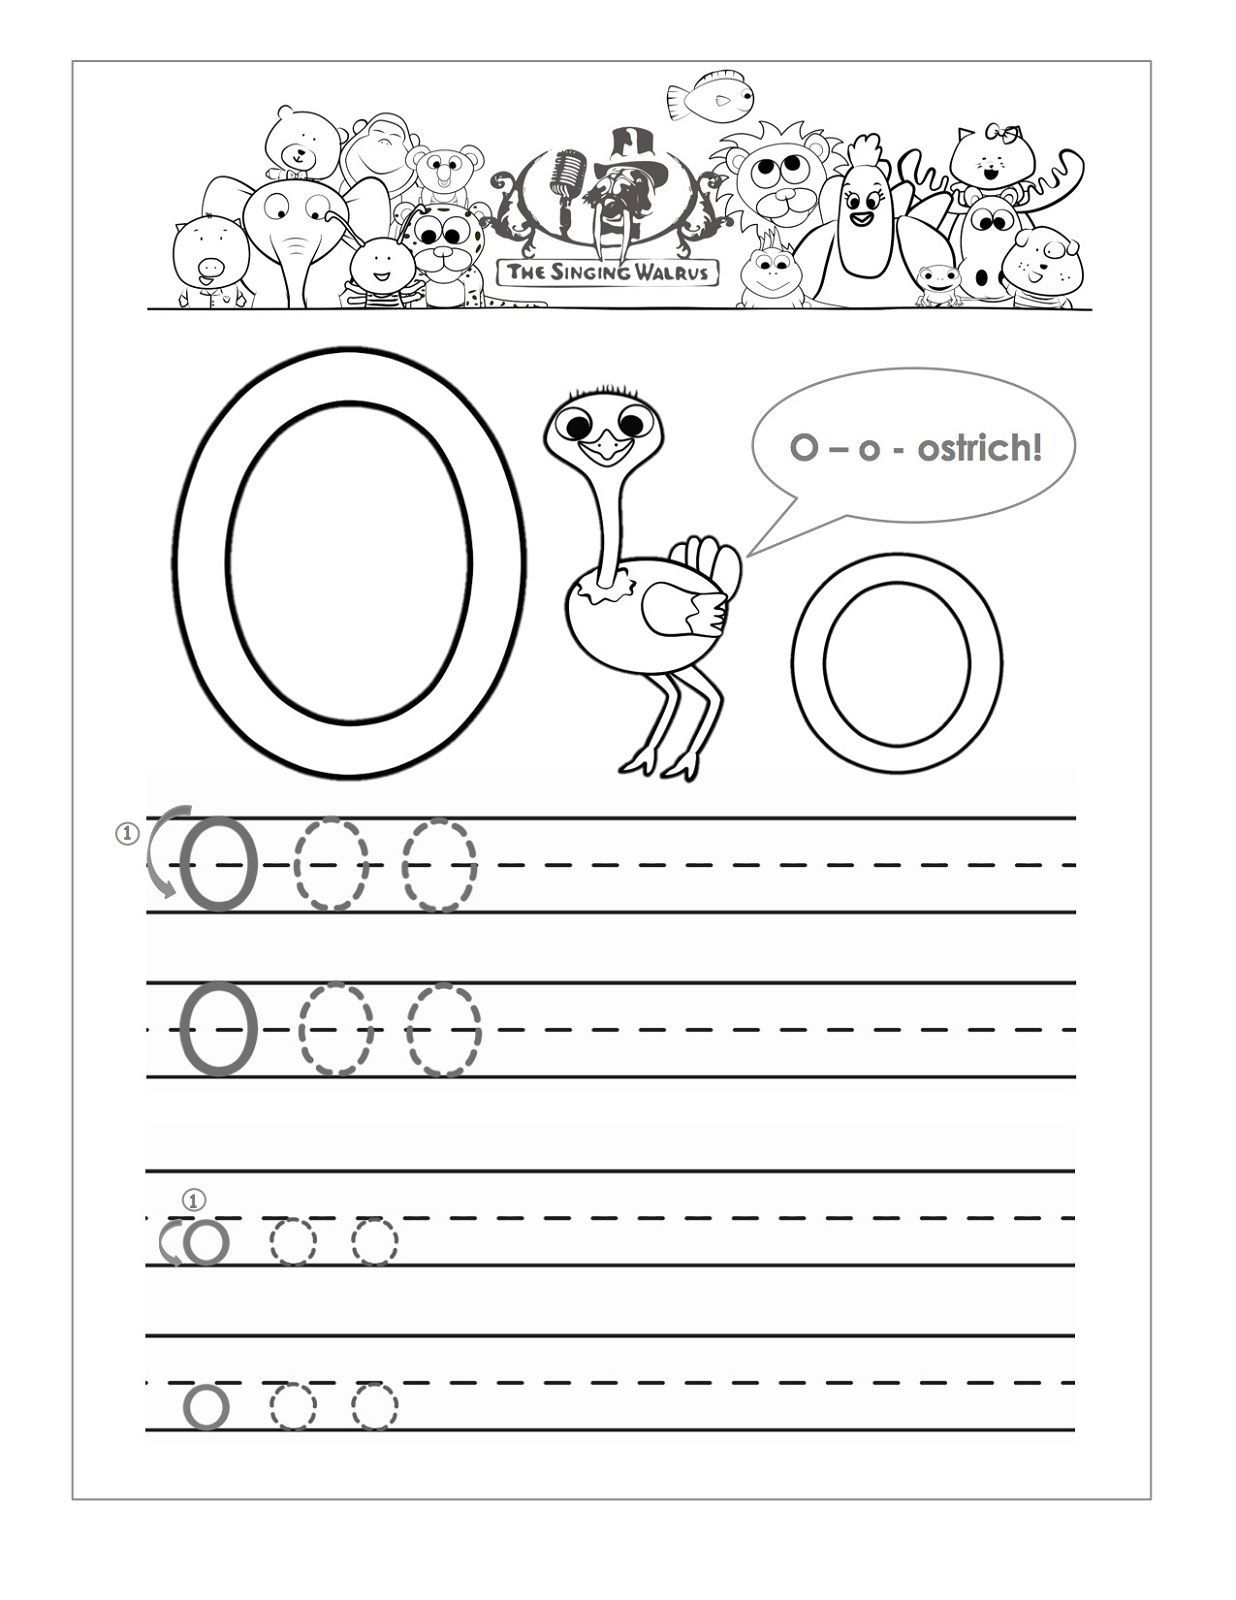 Preschool Worksheets With The Letter O With Images